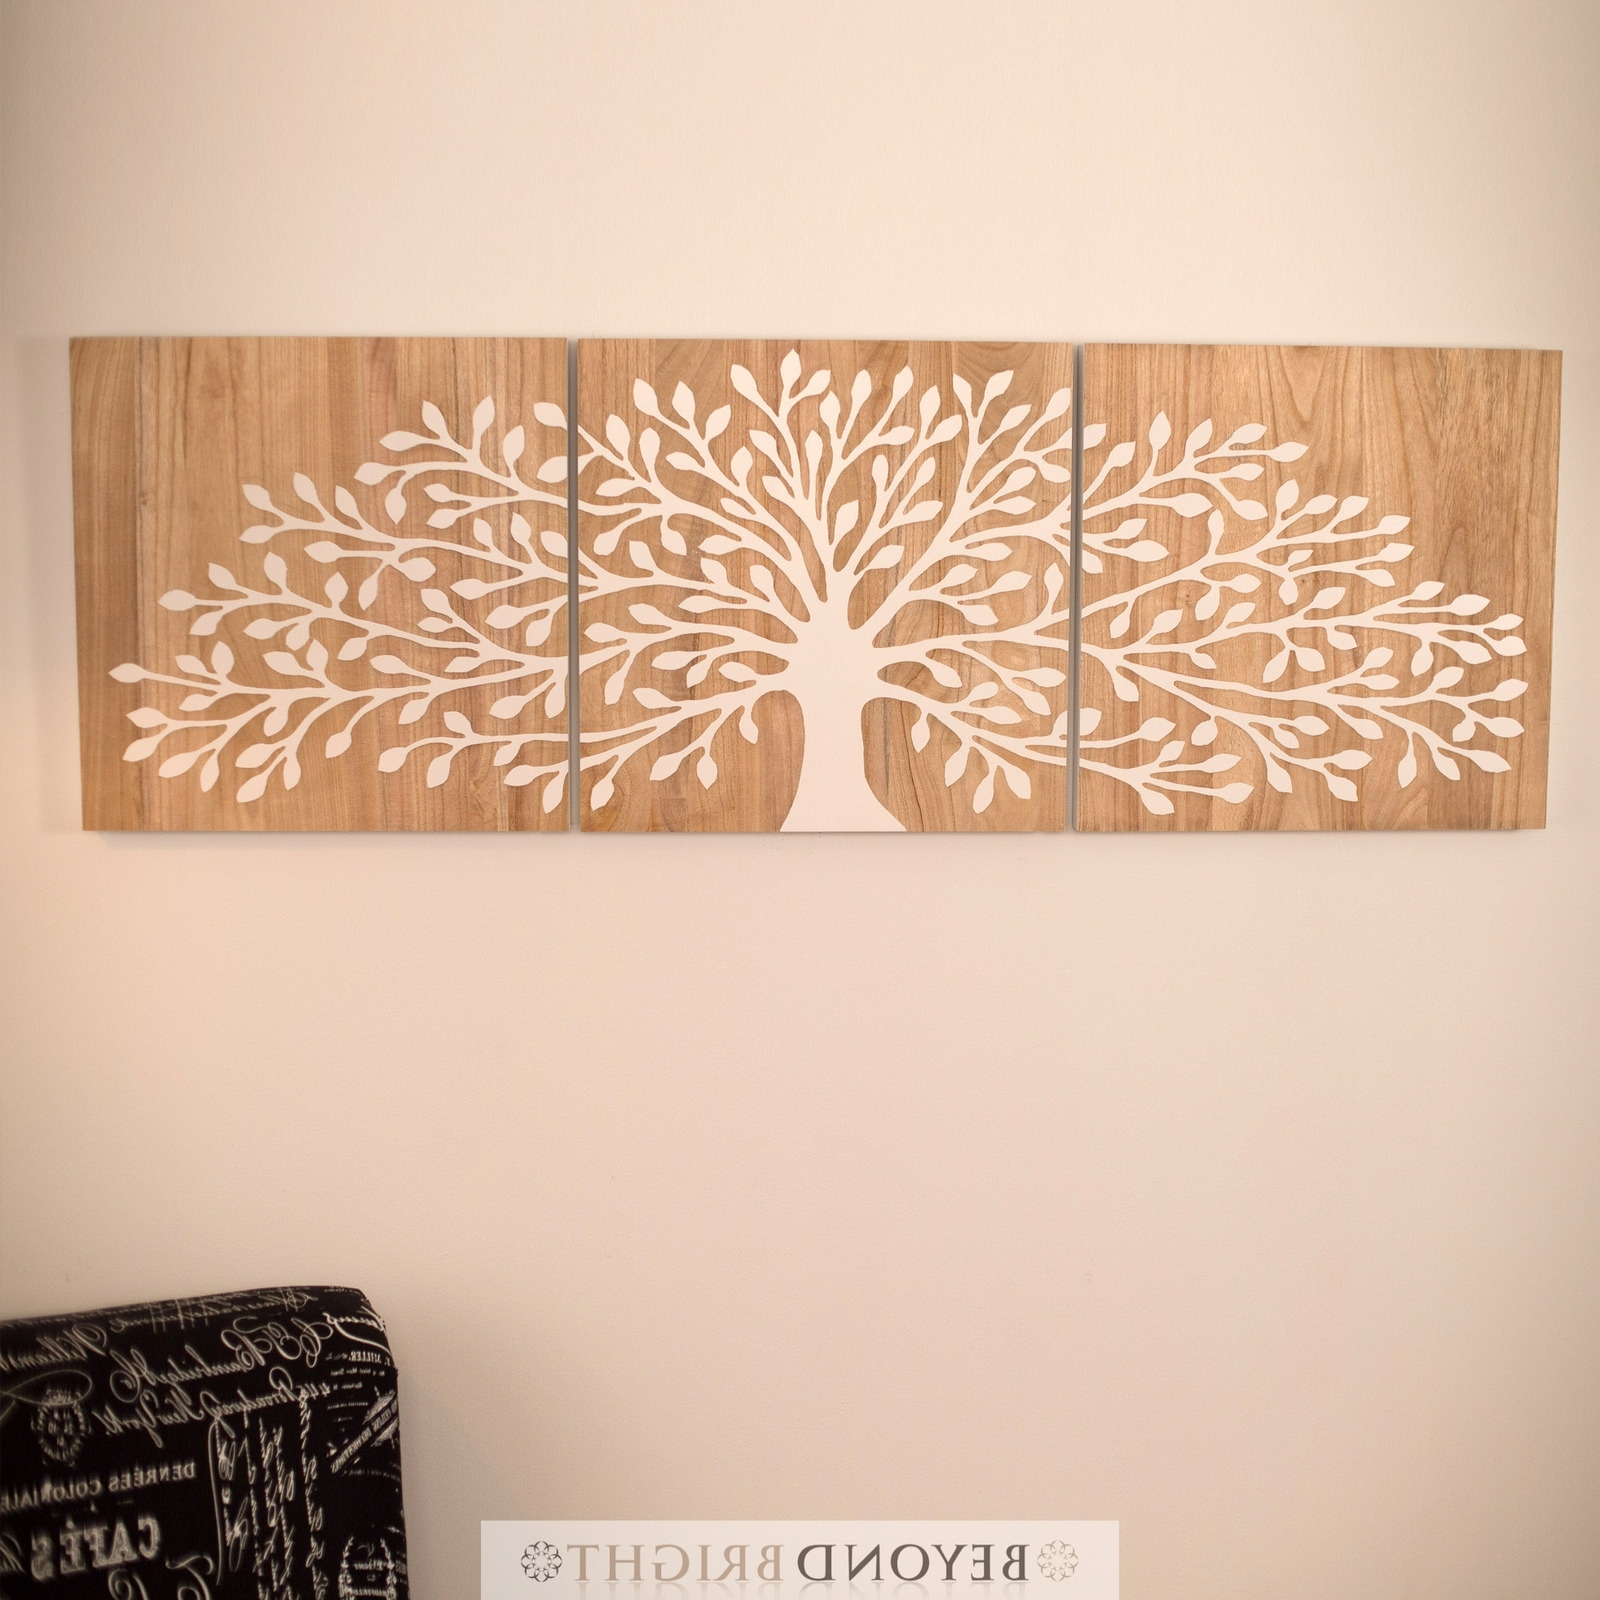 Tree Of Life 60 X 60Cm – Reverse White – 3 Panels Triptych Wall Art Pertaining To Popular Tree Of Life Wall Art (View 15 of 15)